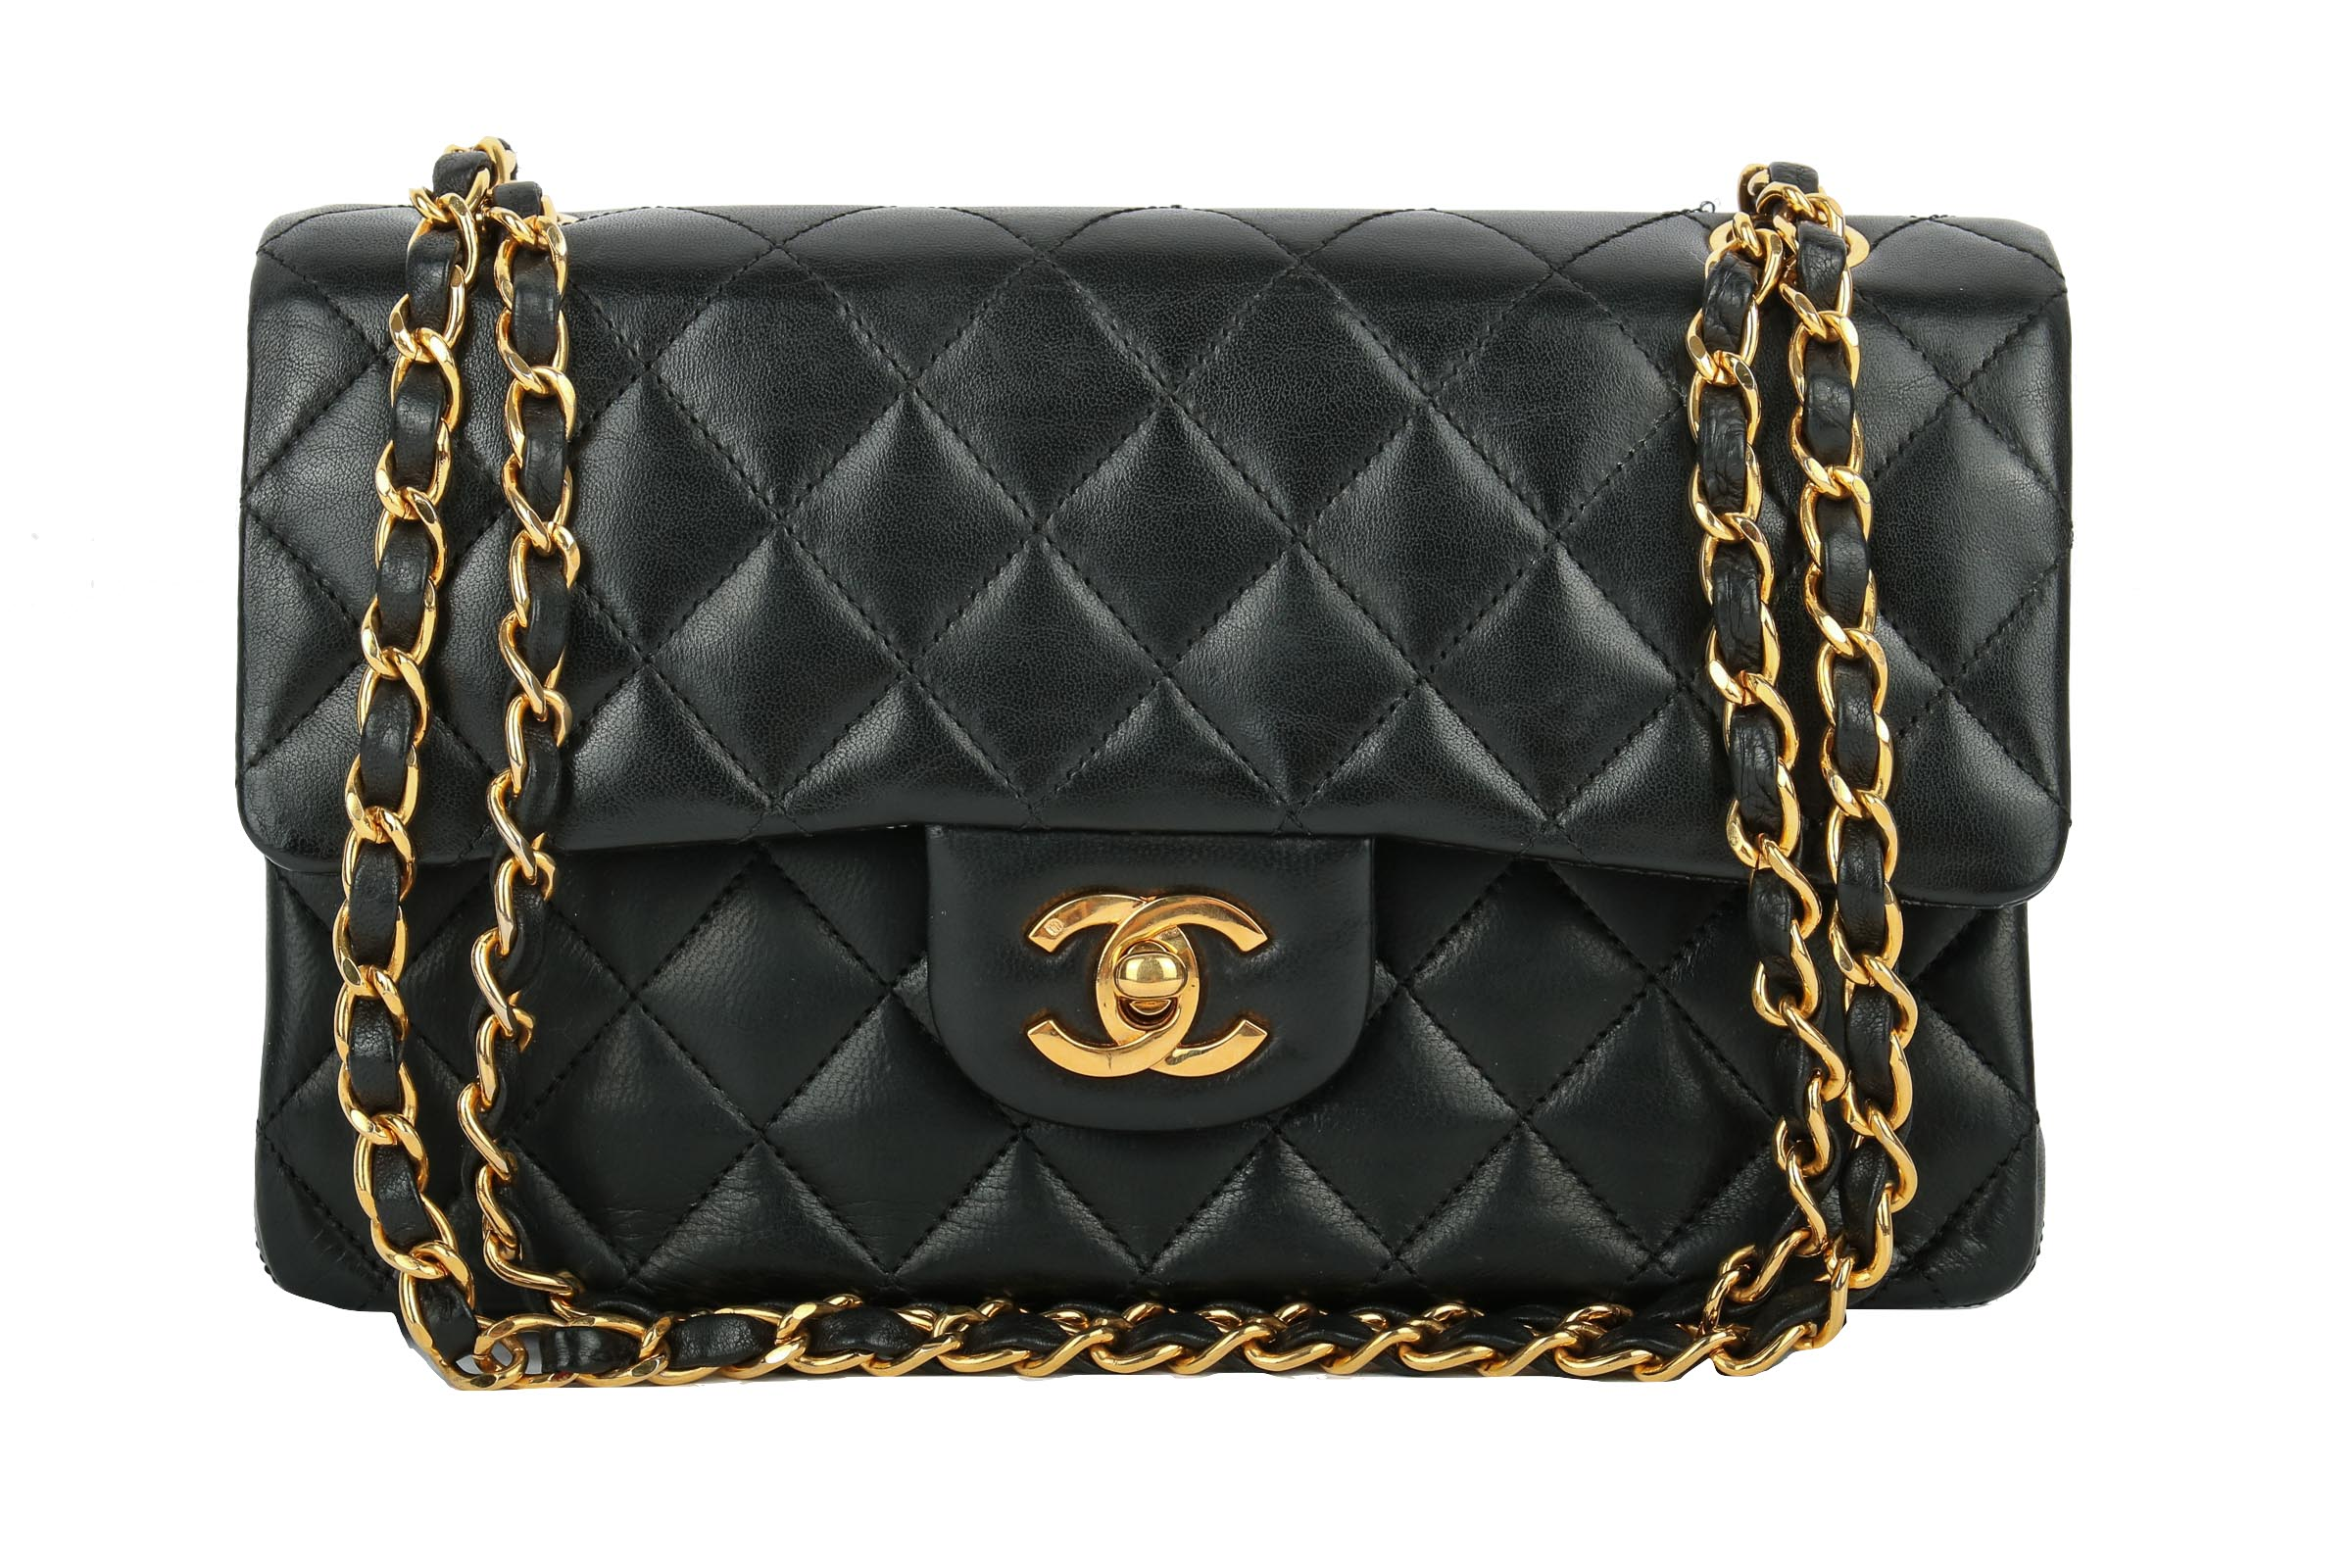 92f63fba5c37f Chanel Timeless Classic Double Flap Small Black